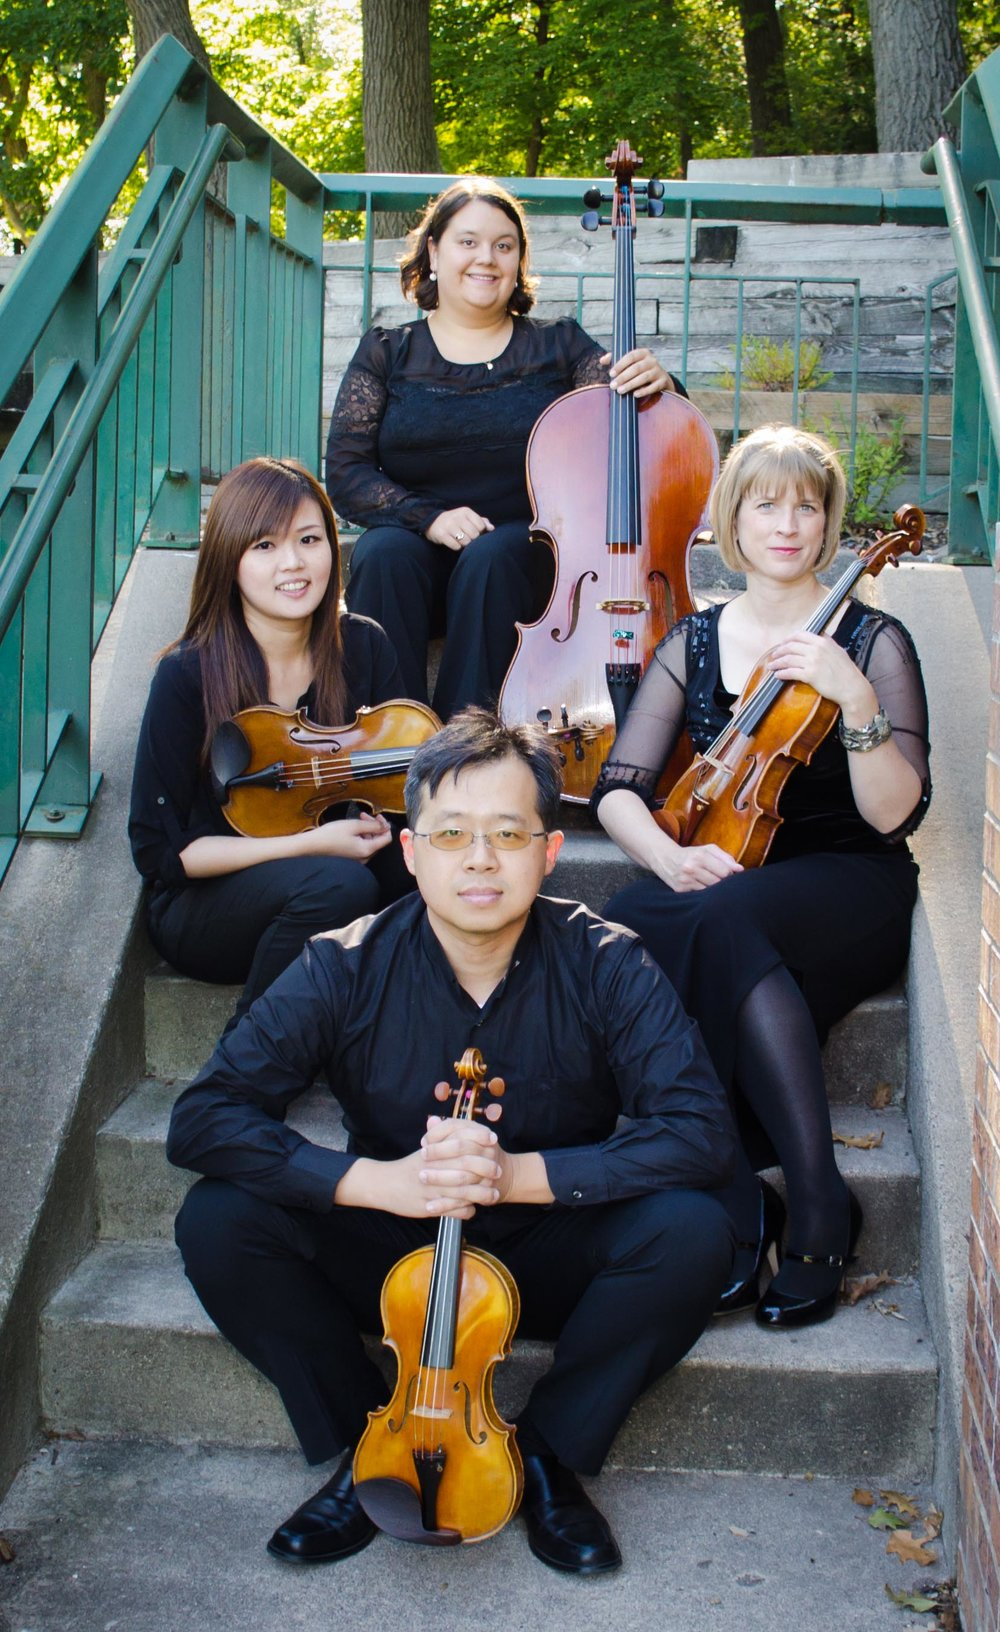 Meadowlark String Quartet: Hsin-Yin (Cindy) Min,  violin;  Te-Chiang (Bacco) Liu,  violin;  Kelsey Farr,  viola (not pictured);  Lindsay Schlemmer,  cello